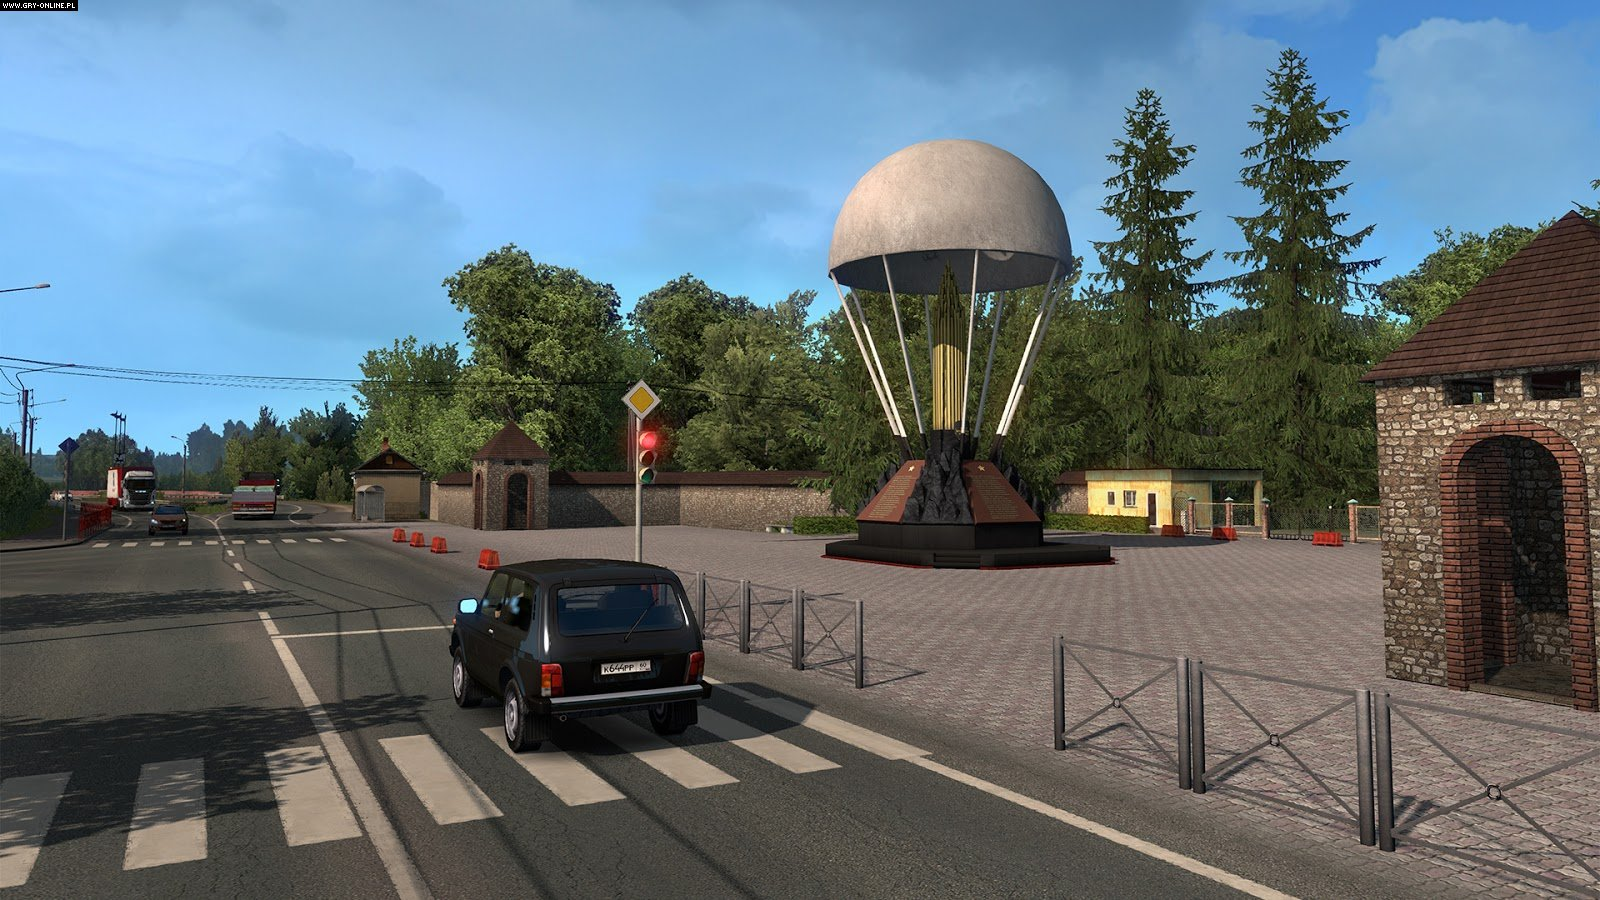 Euro Truck Simulator 2: Beyond the Baltic Sea PC Games Image 1/20, SCS Software